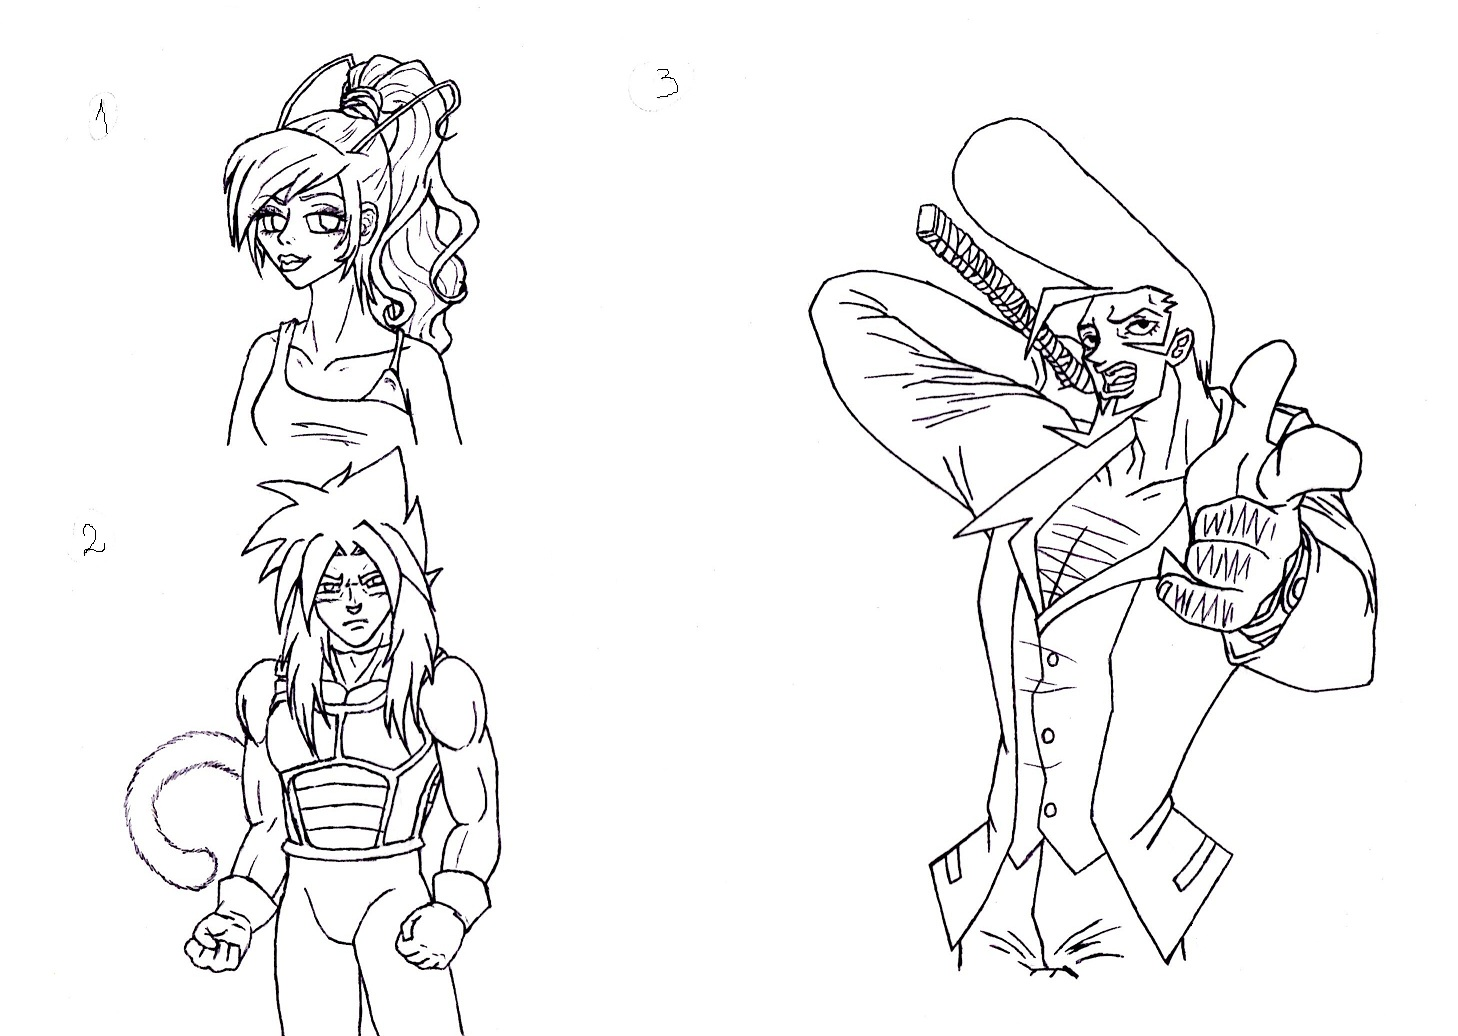 3 commi linearts by MusicAndArtItsMyLife